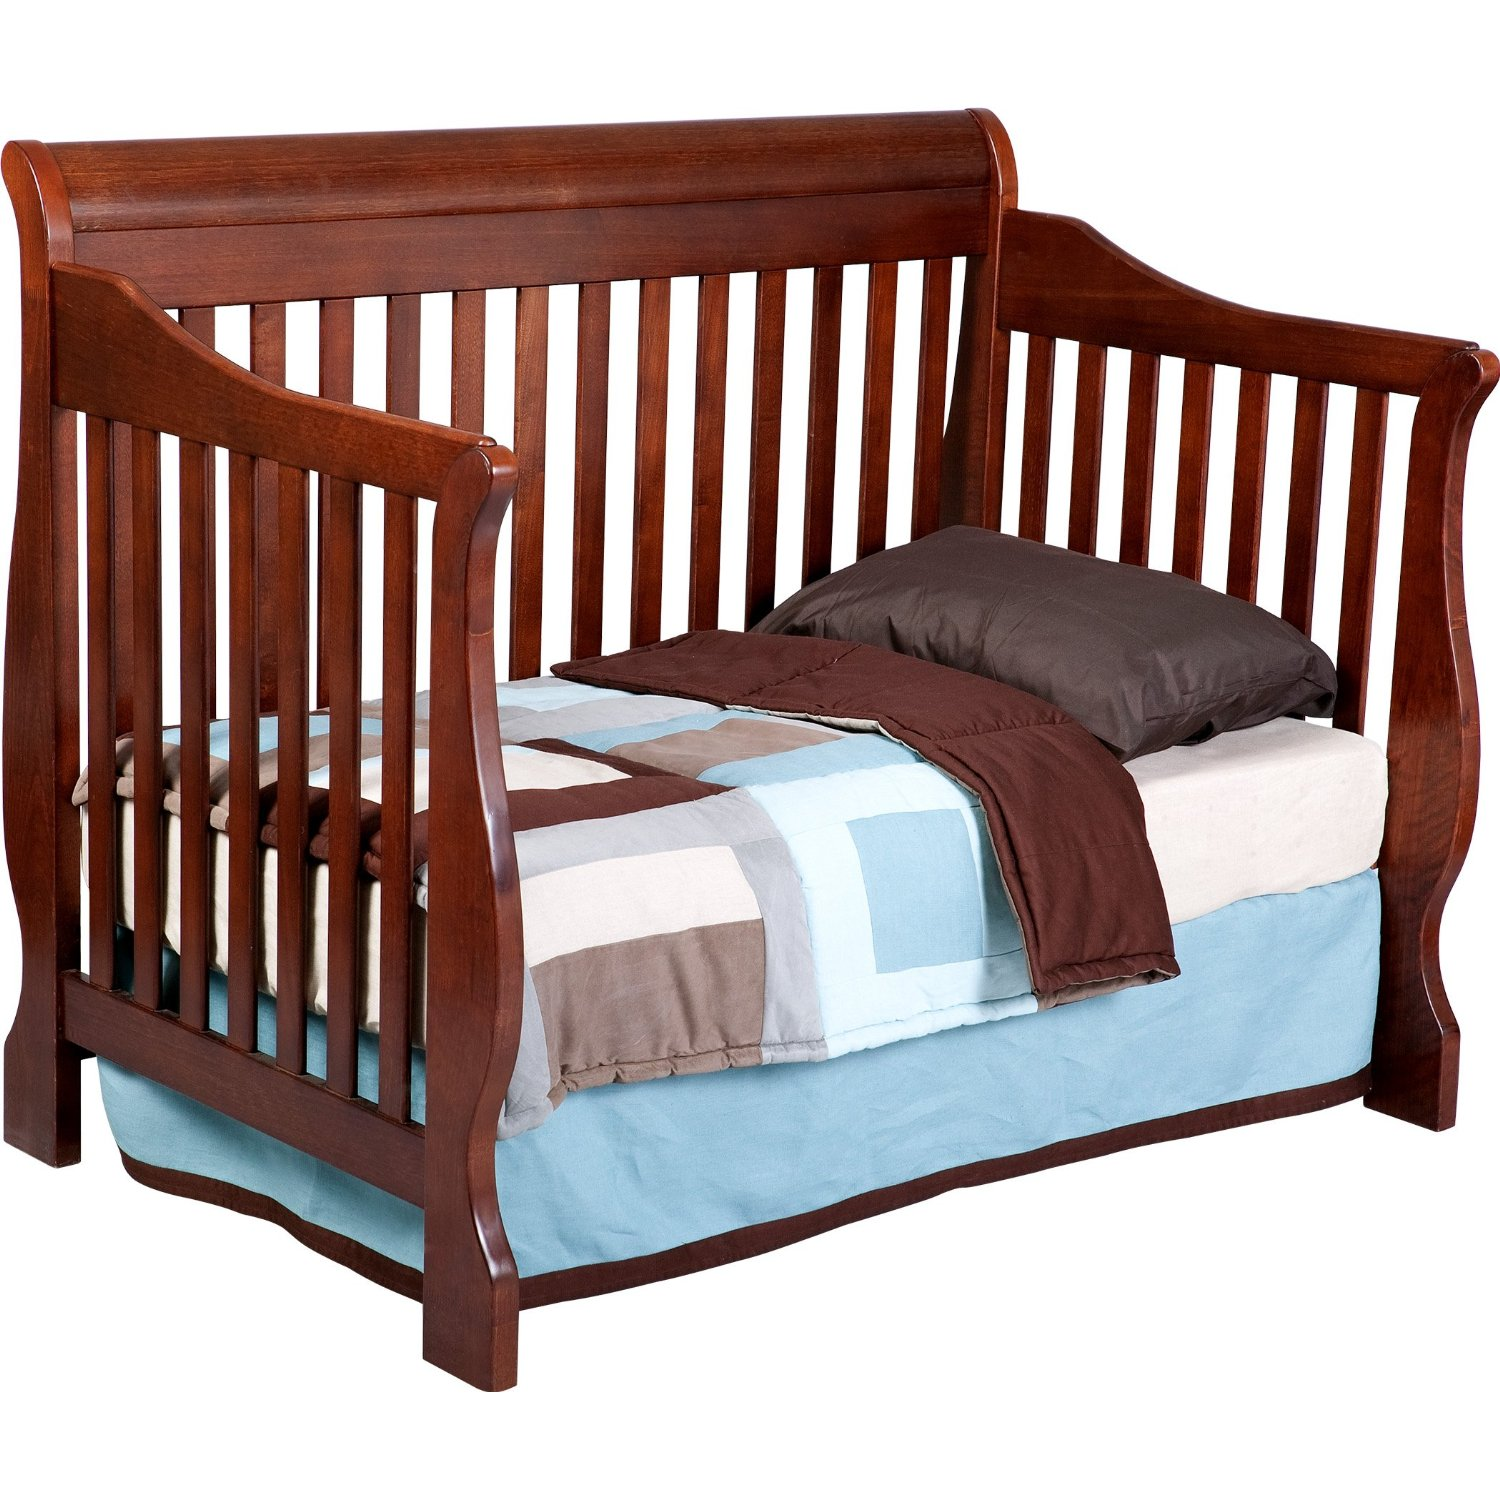 3 in 1 baby crib plans modern baby crib sets for Plan bed